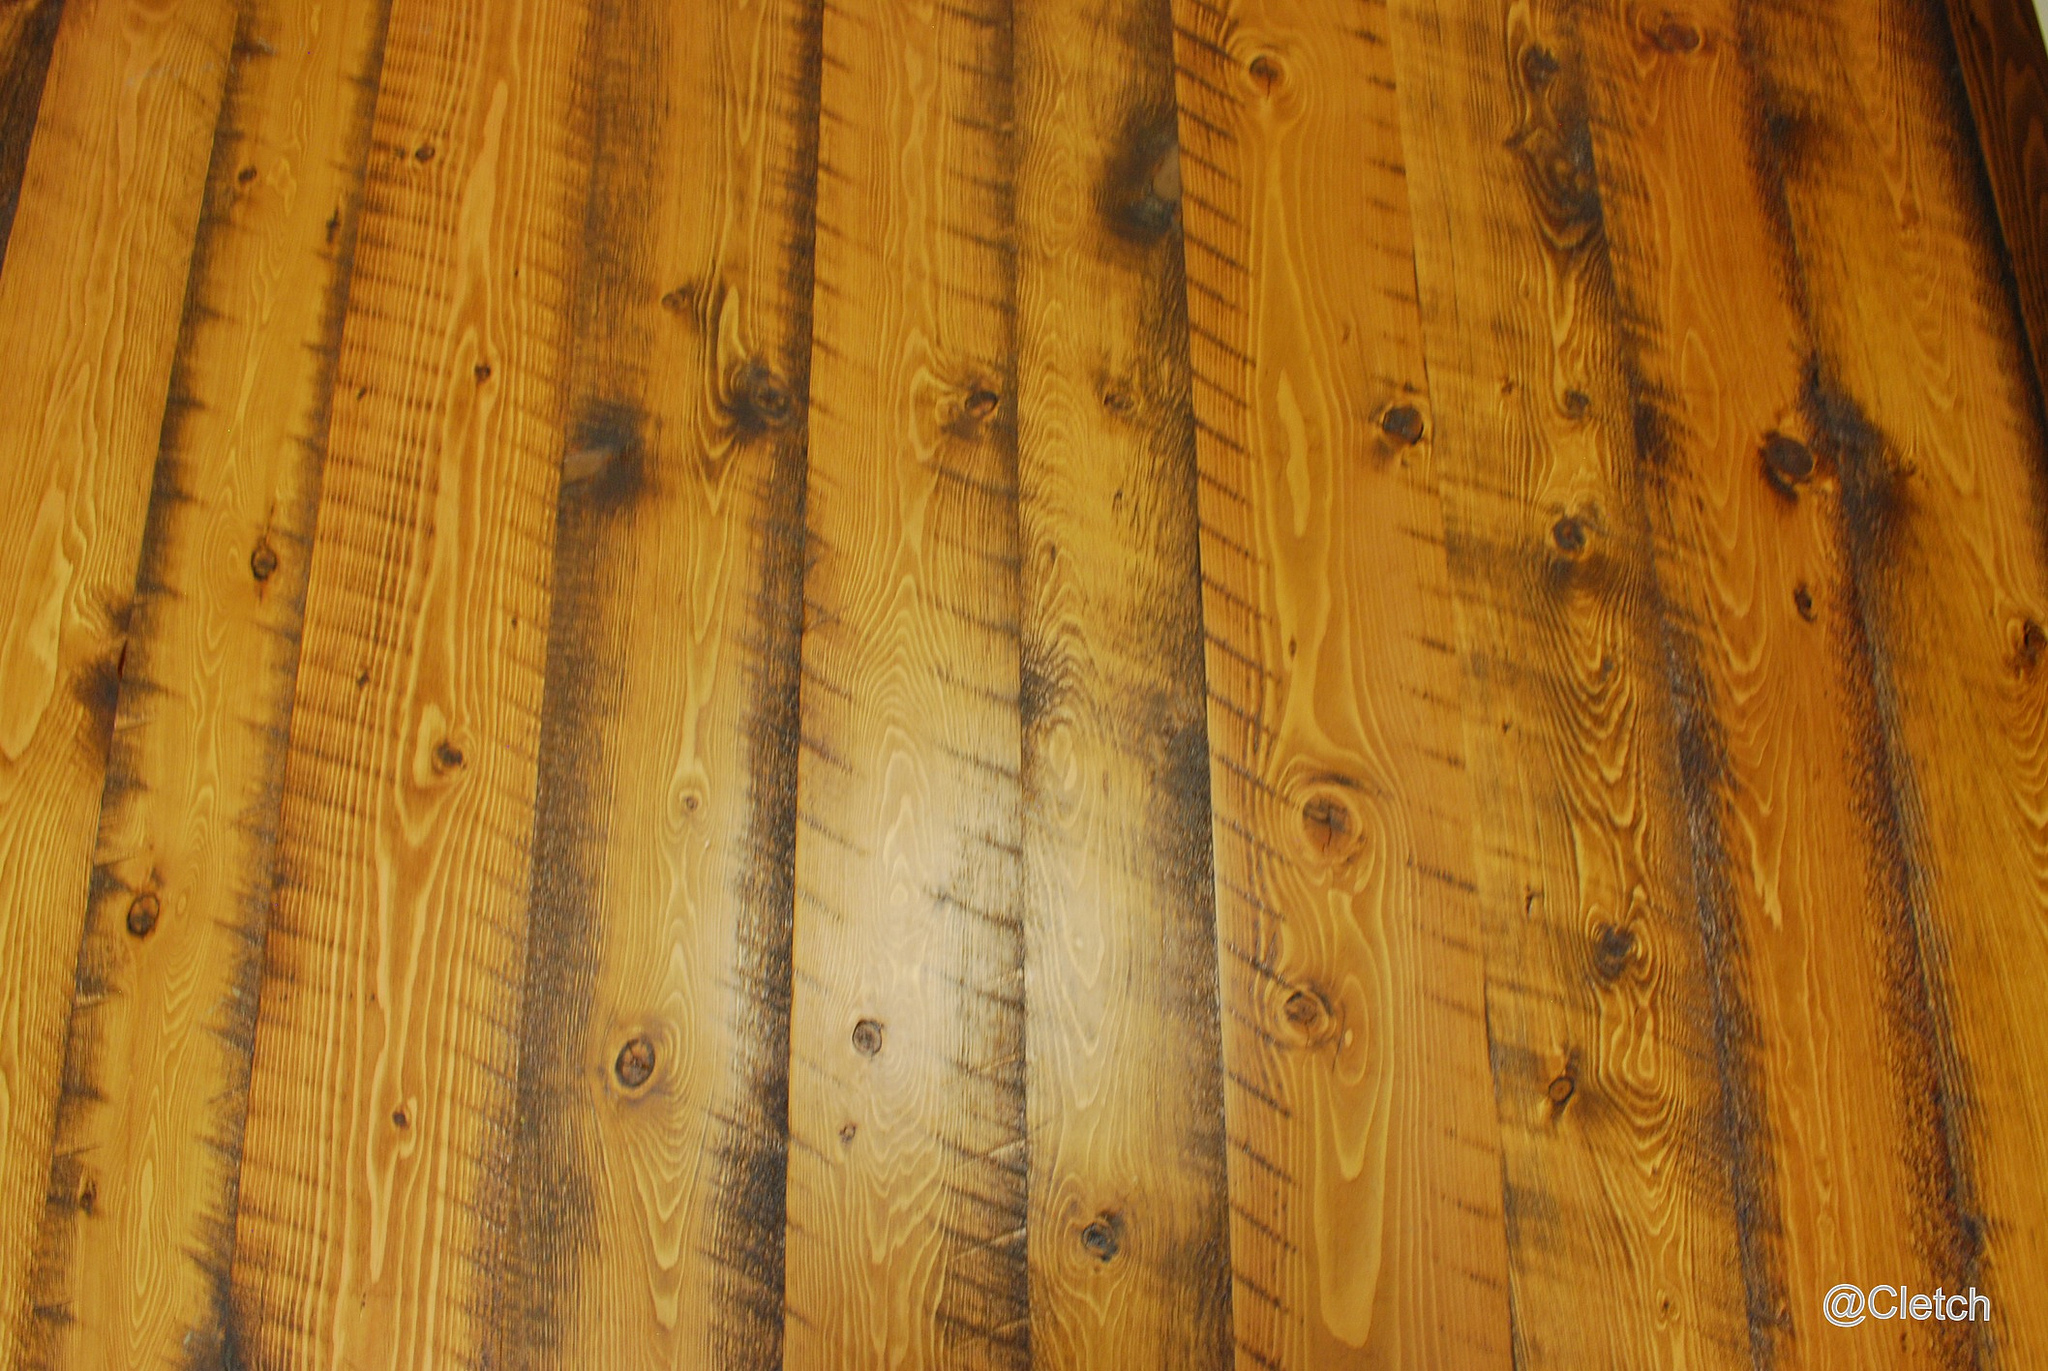 Douglas Fir is a very stiff soft wood, which makes it a great choice for a flooring.